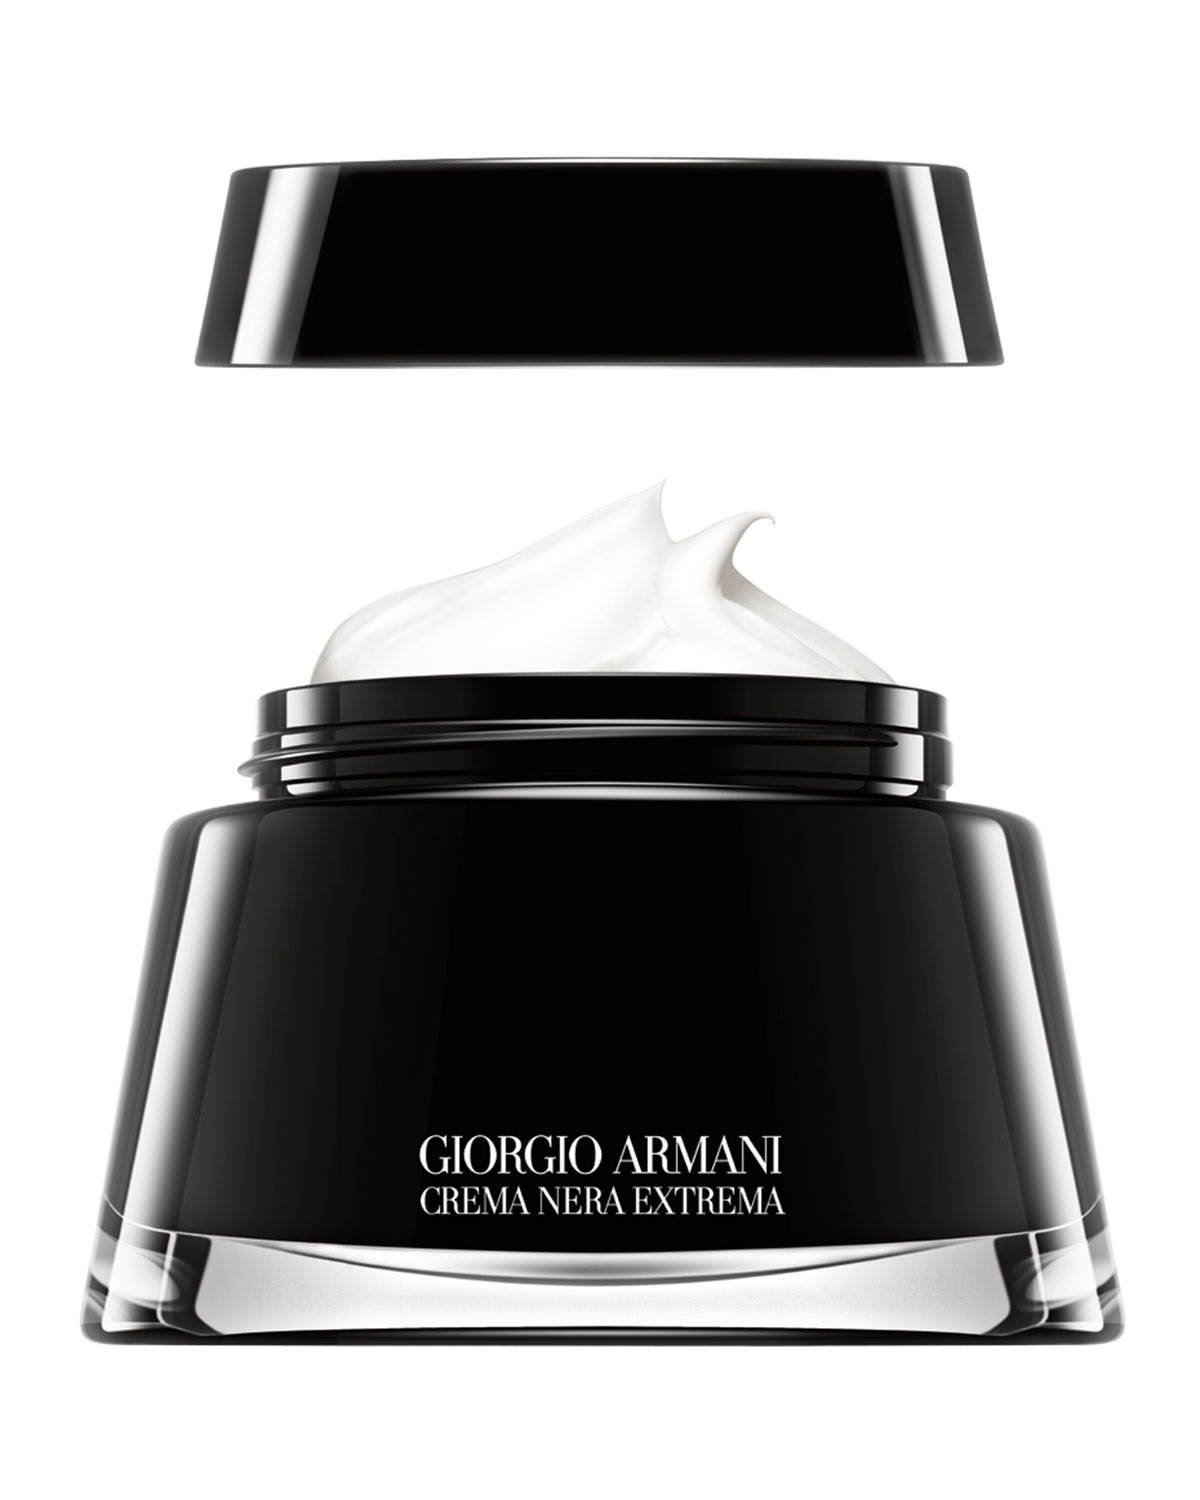 Giorgio Armani 1.7 oz.  Crema Nera Extrema Light Cream